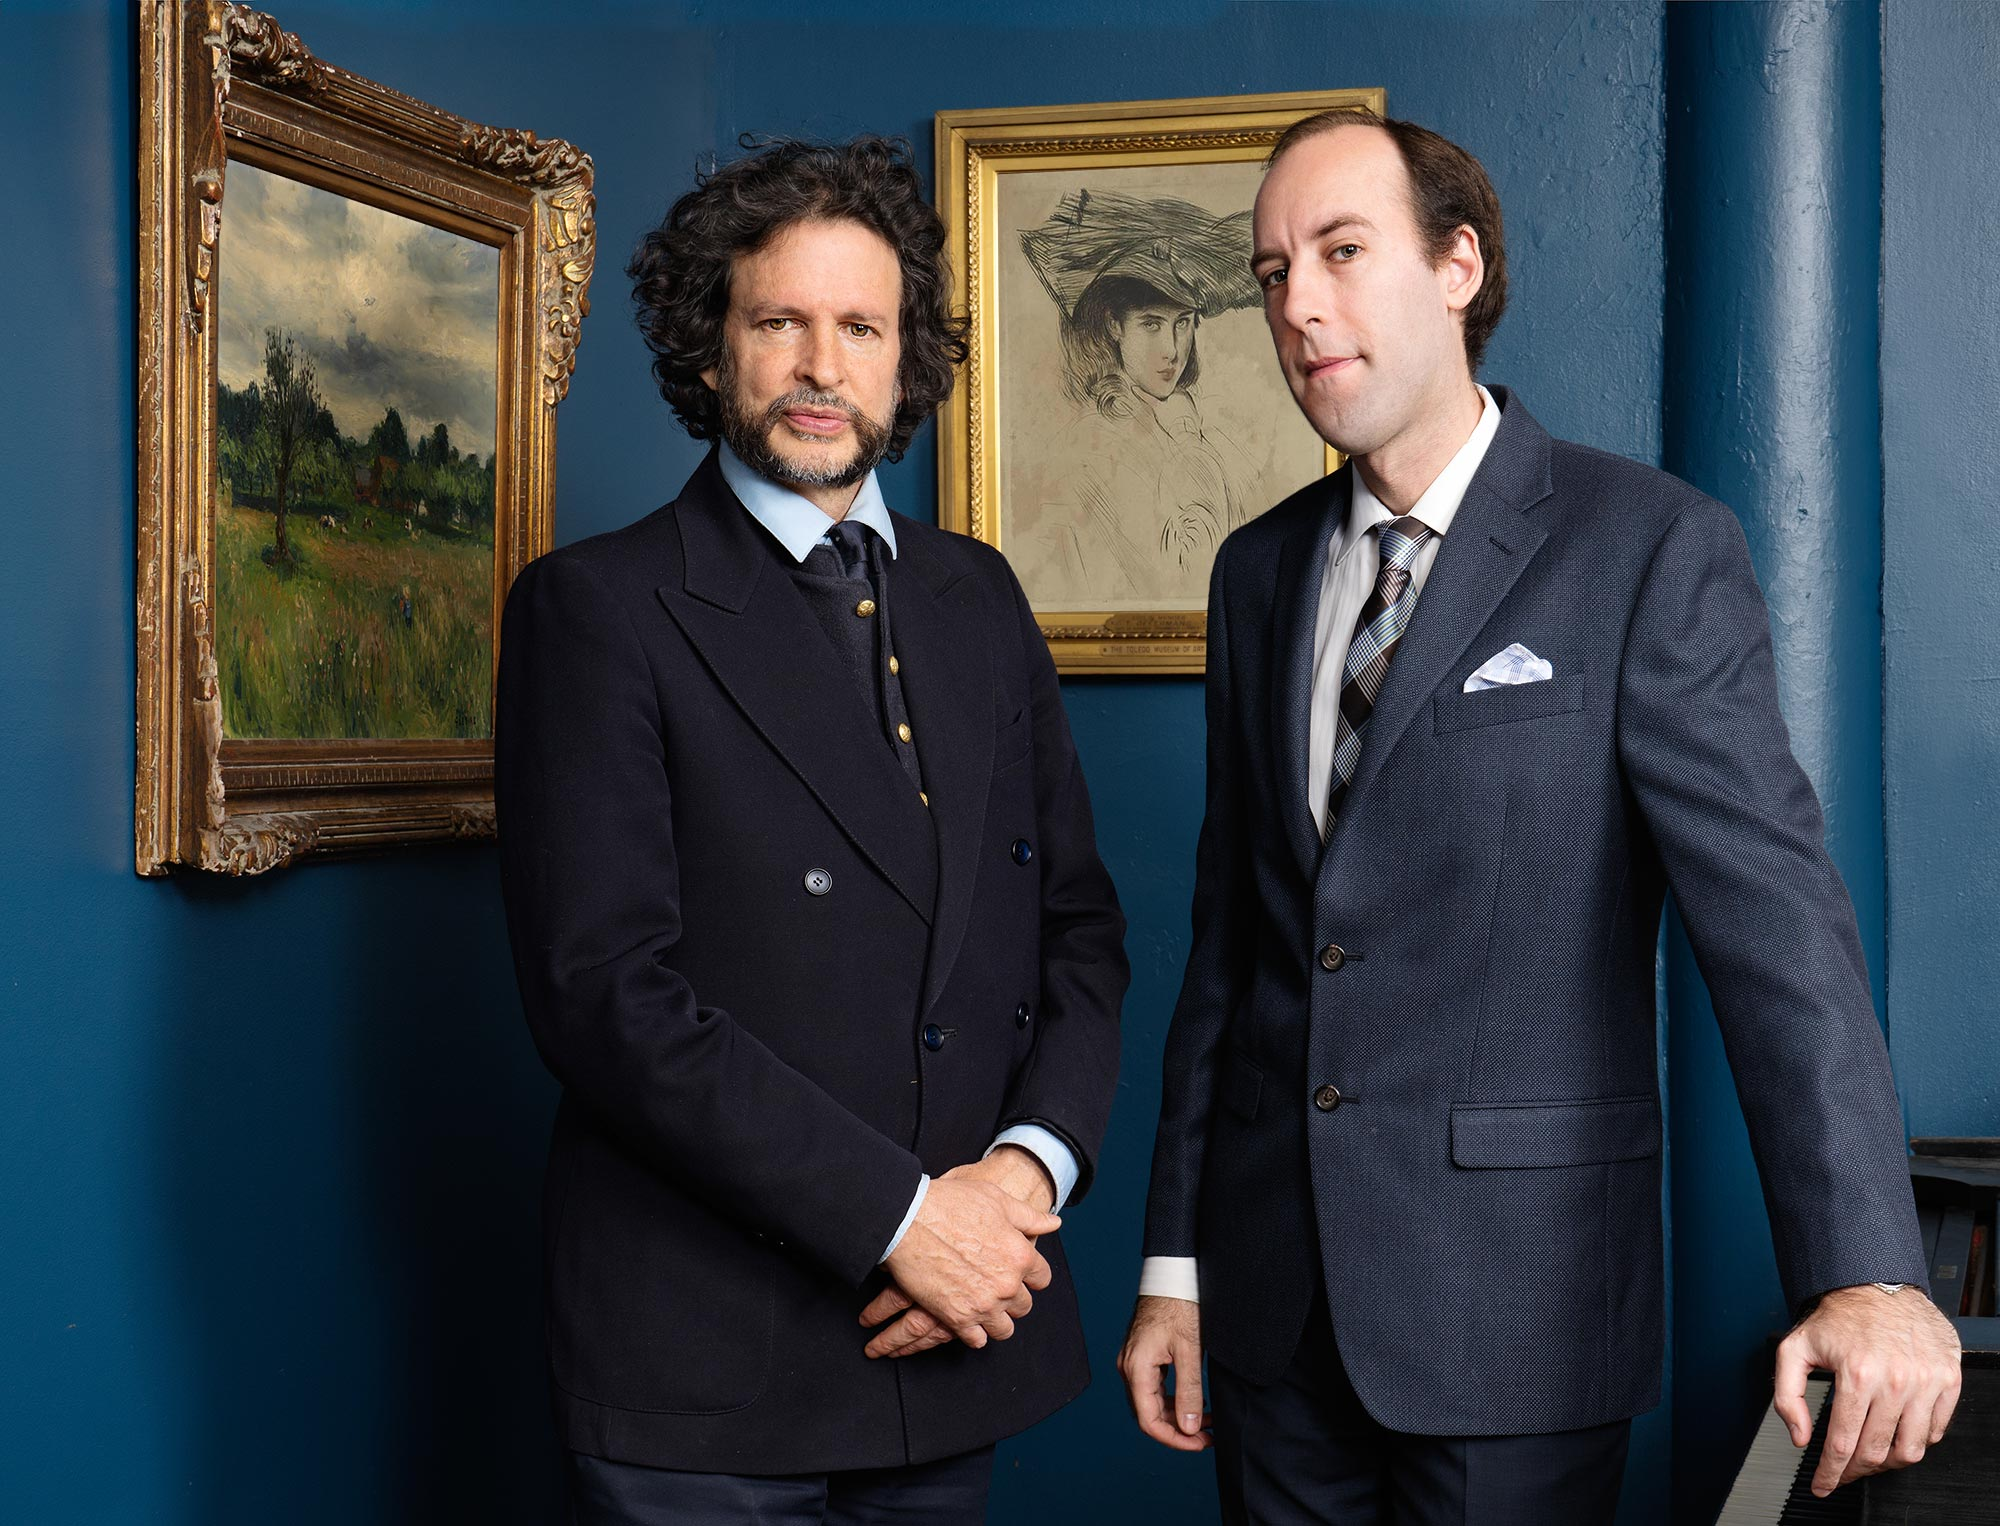 Photo of Gregory Singer and Steven Zynszajn of Elegant Century Art